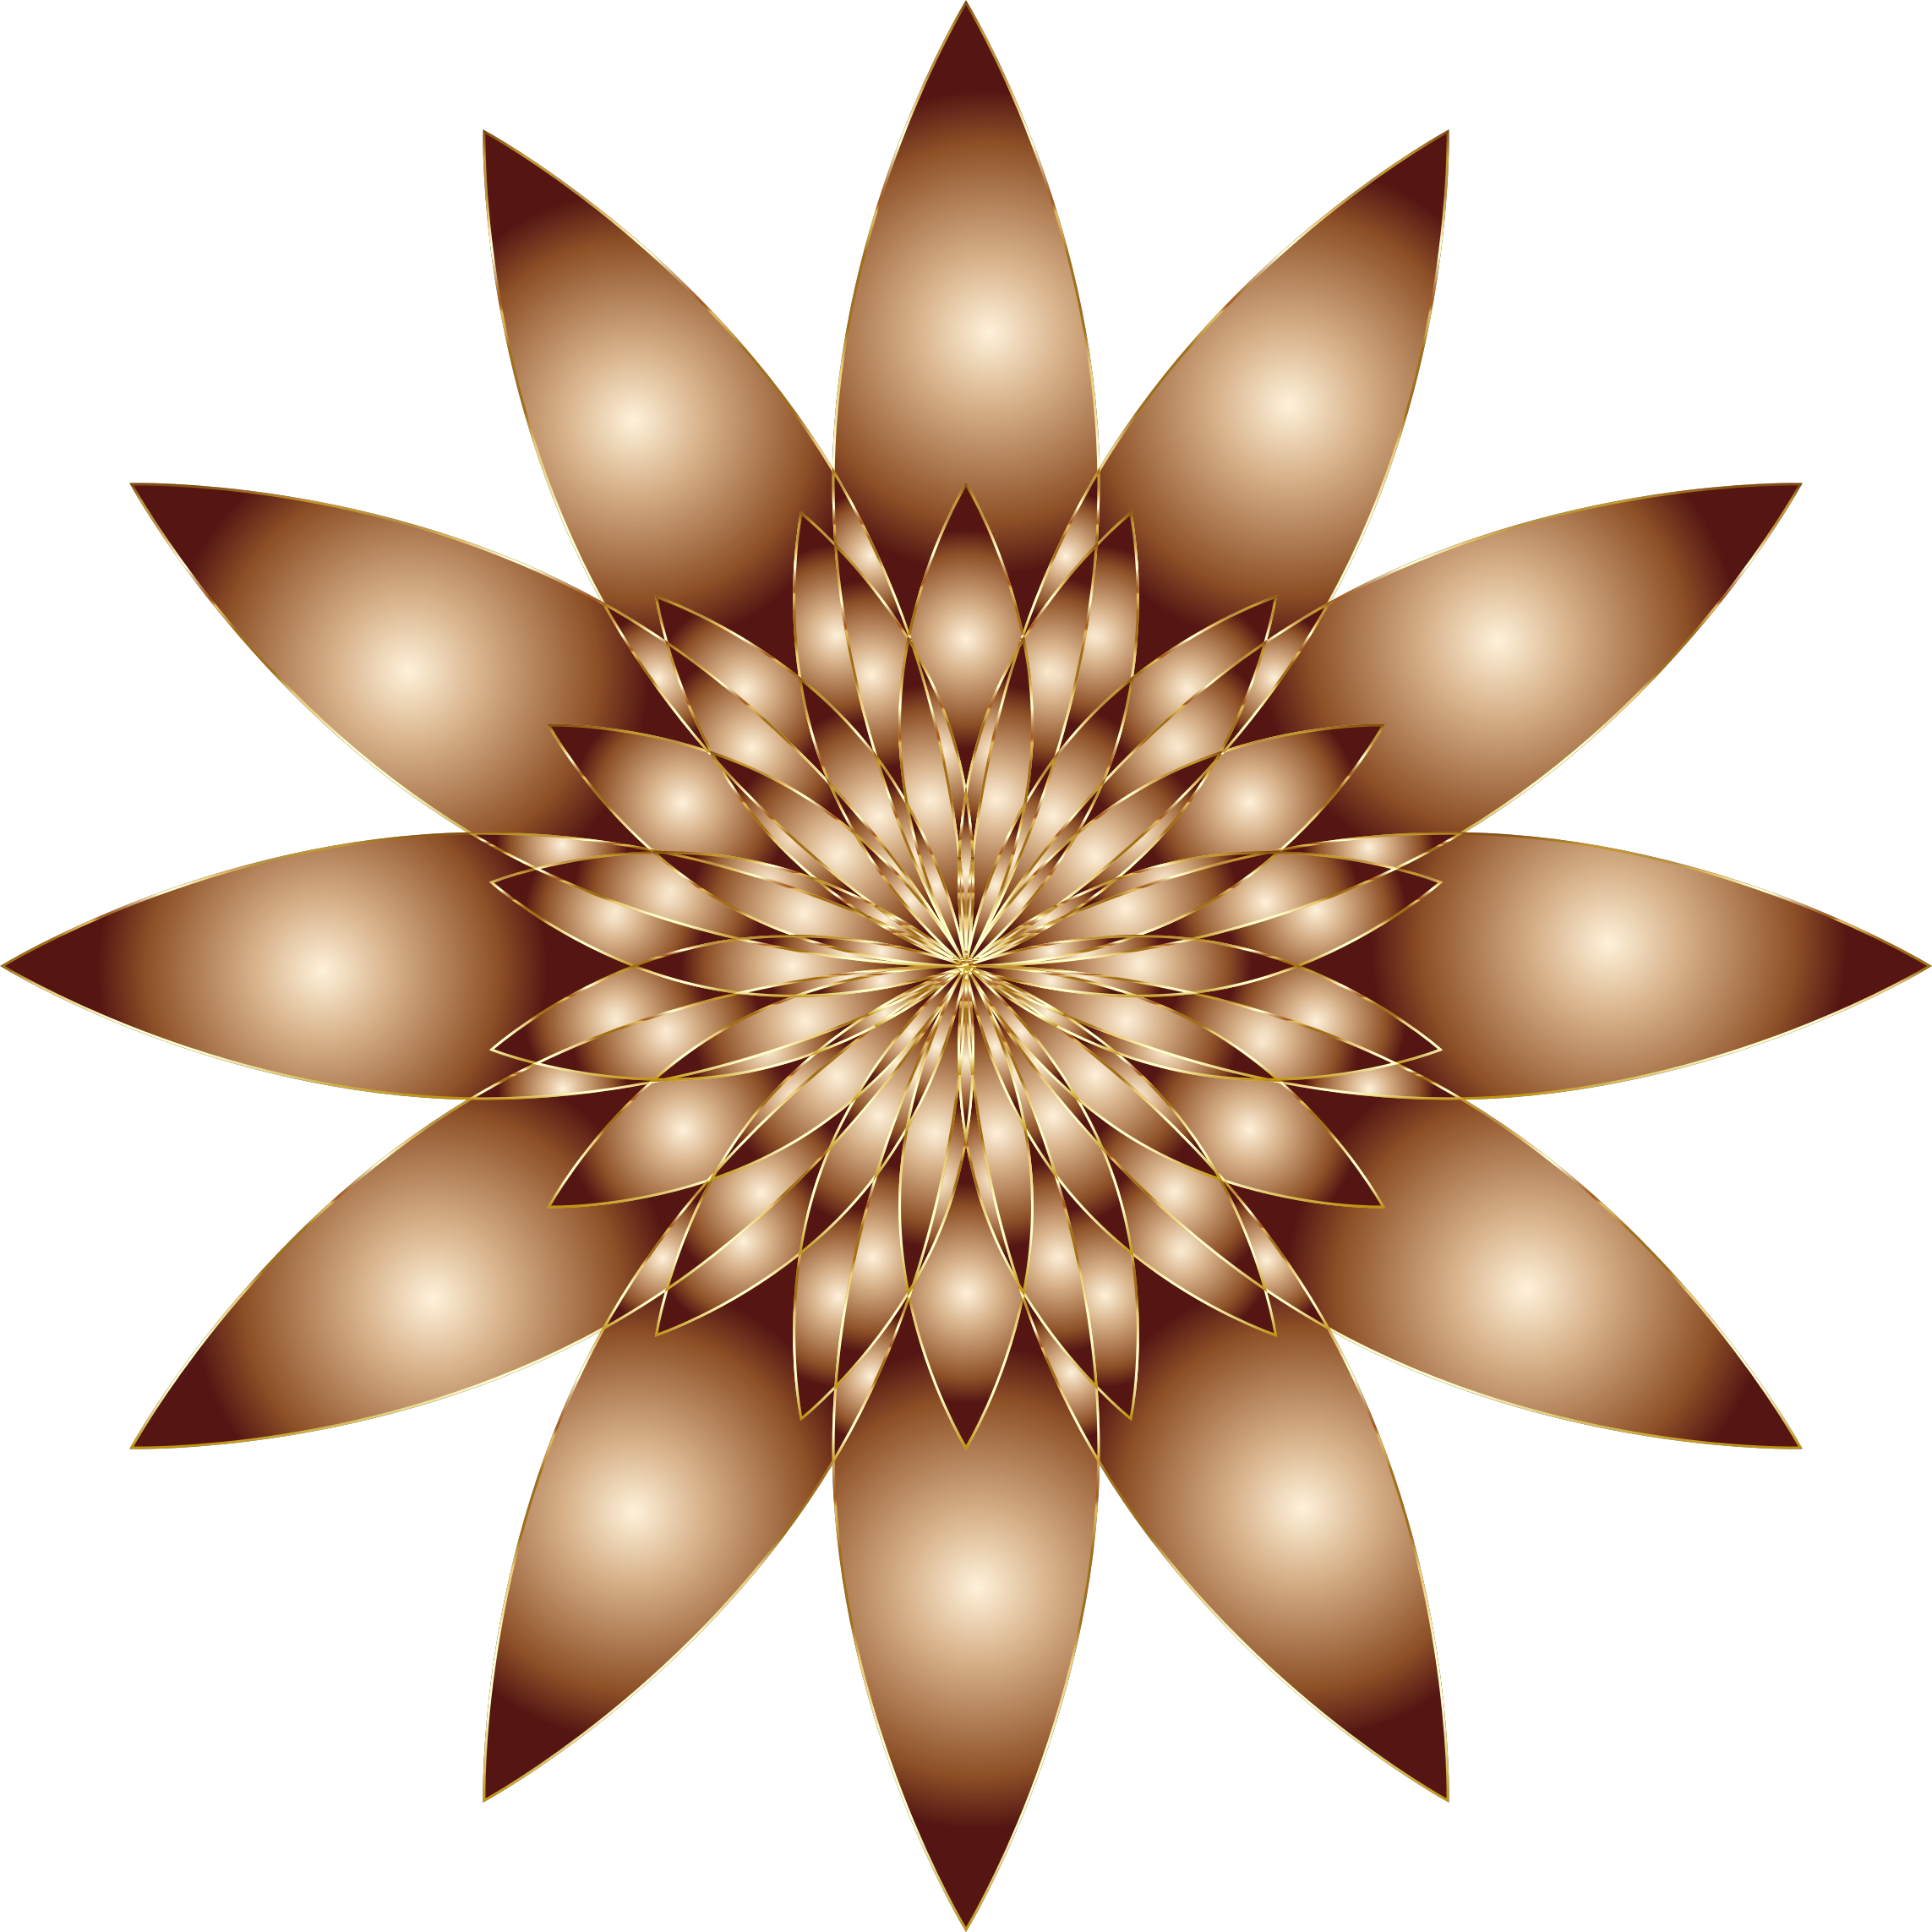 Brown flower png. Chromatic no background icons